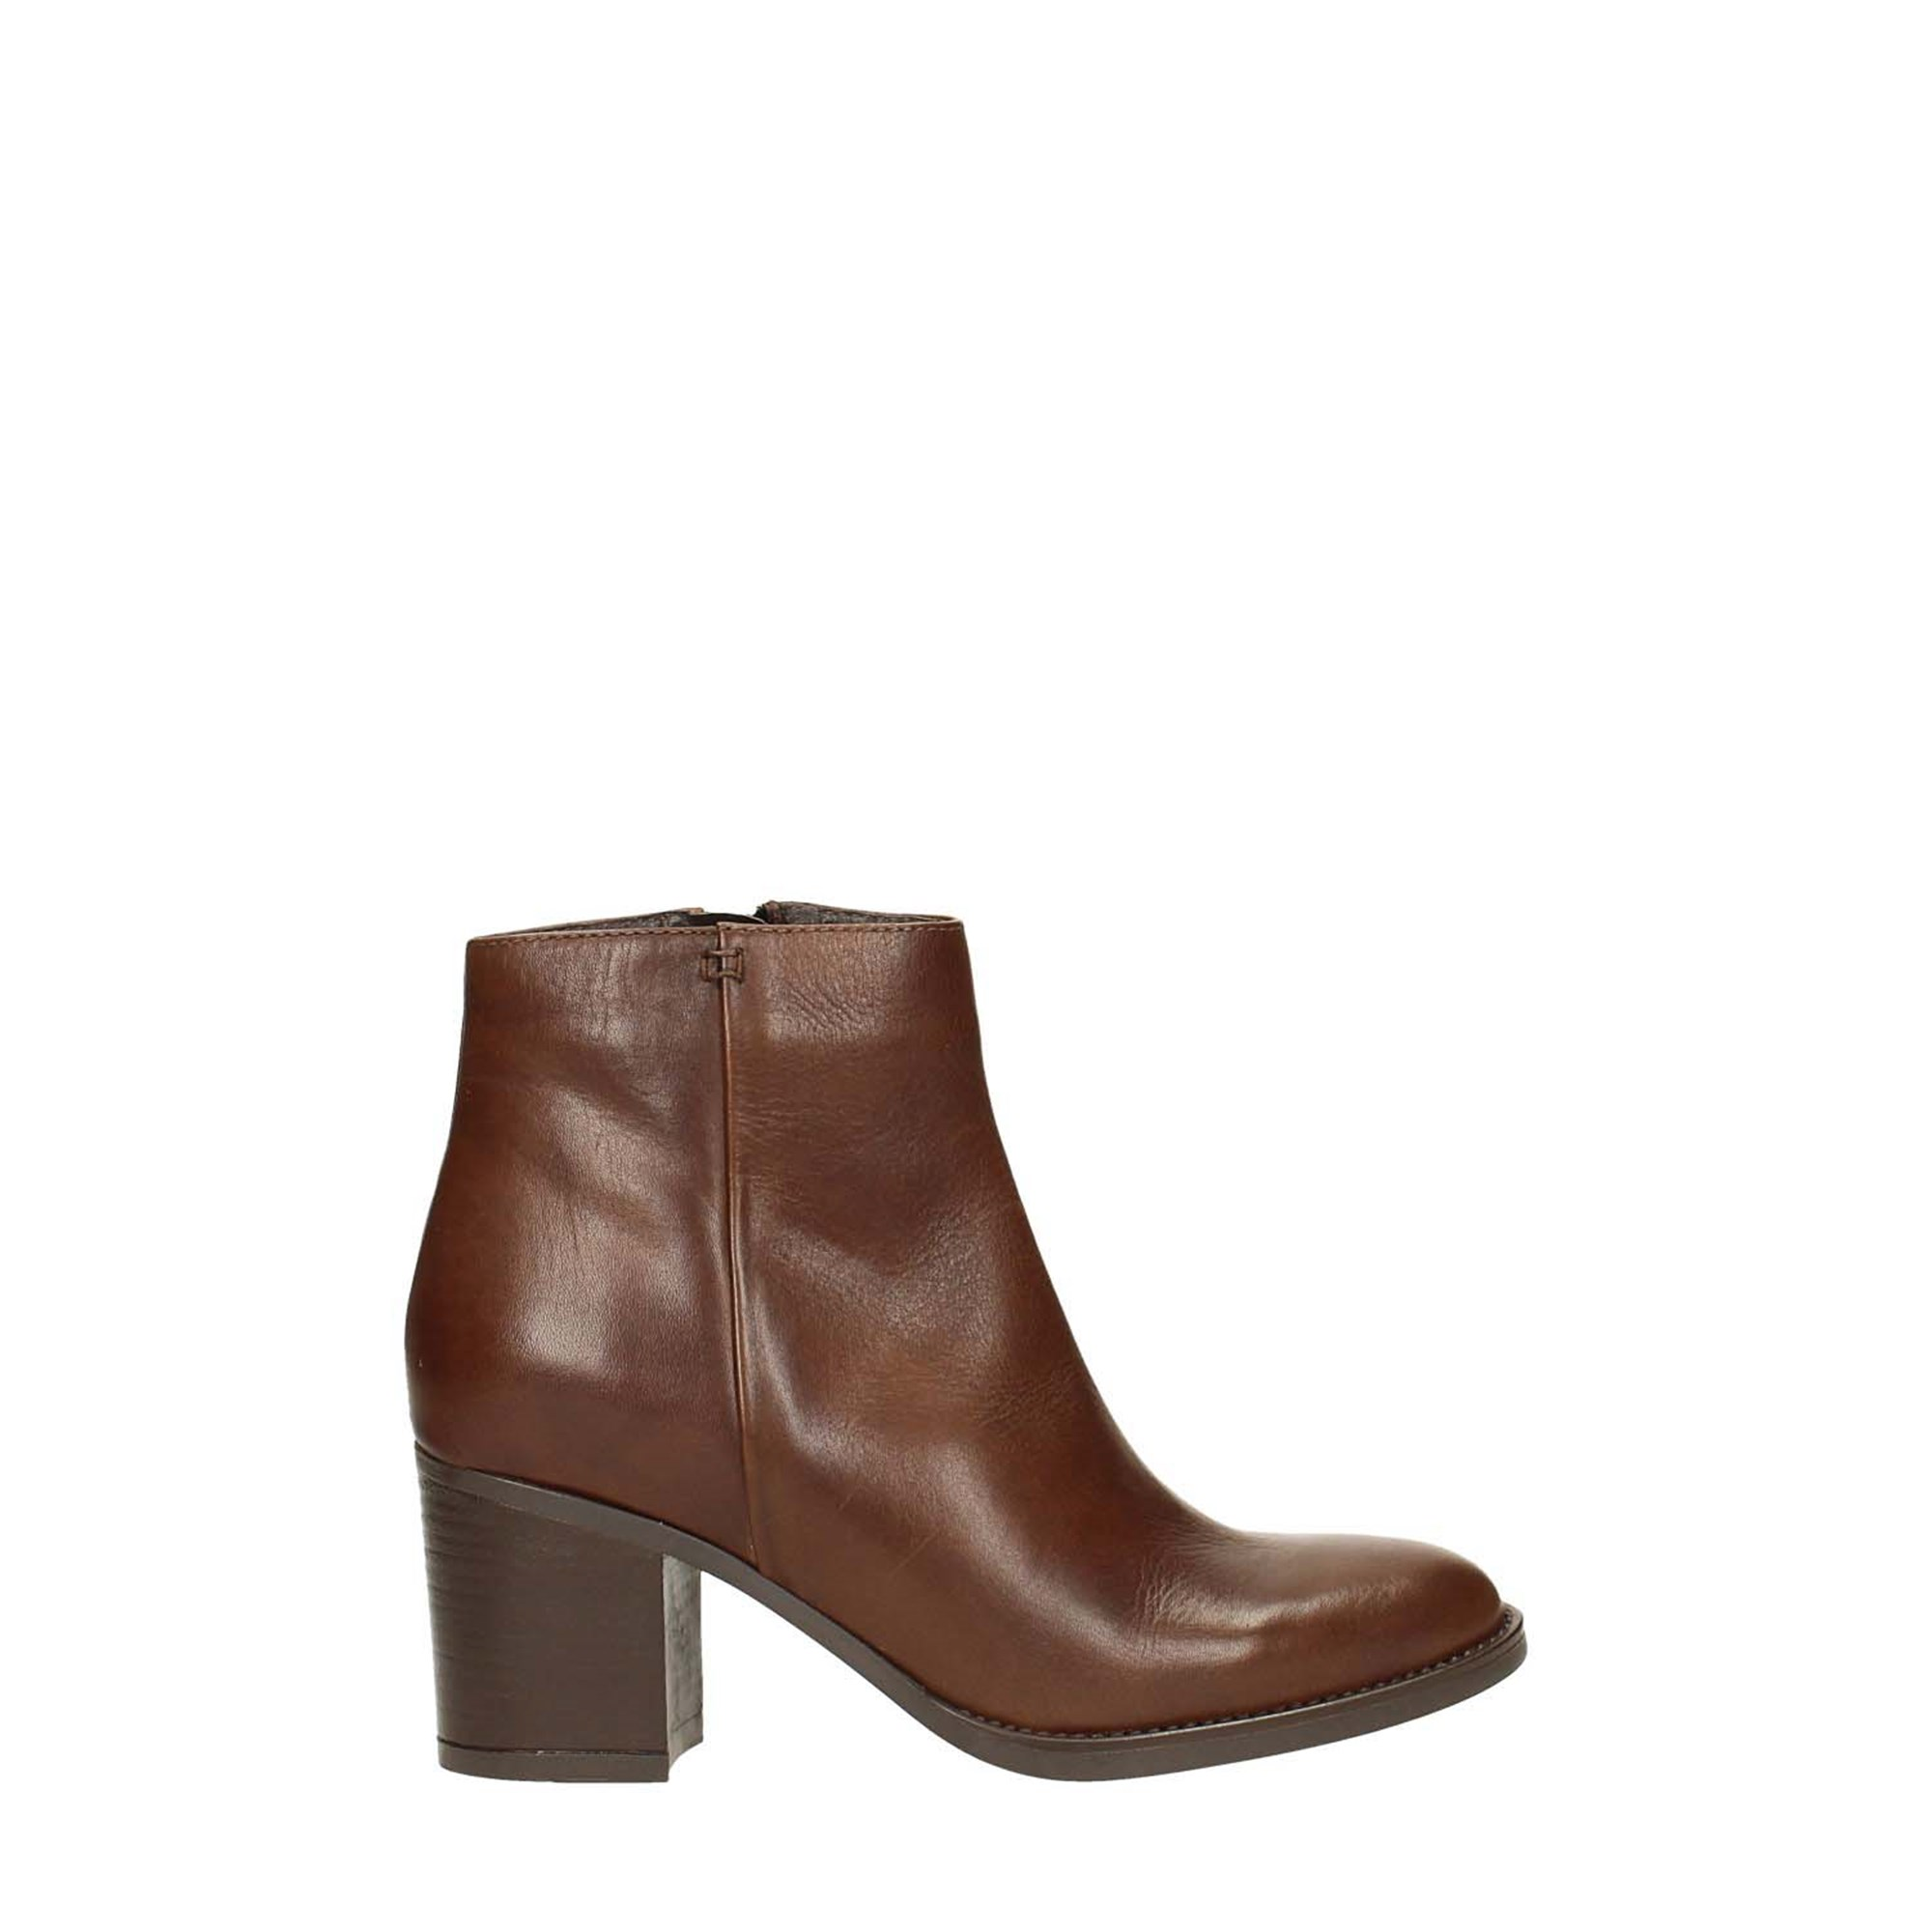 Tata Italia Shoes Woman Stivaletti 5164